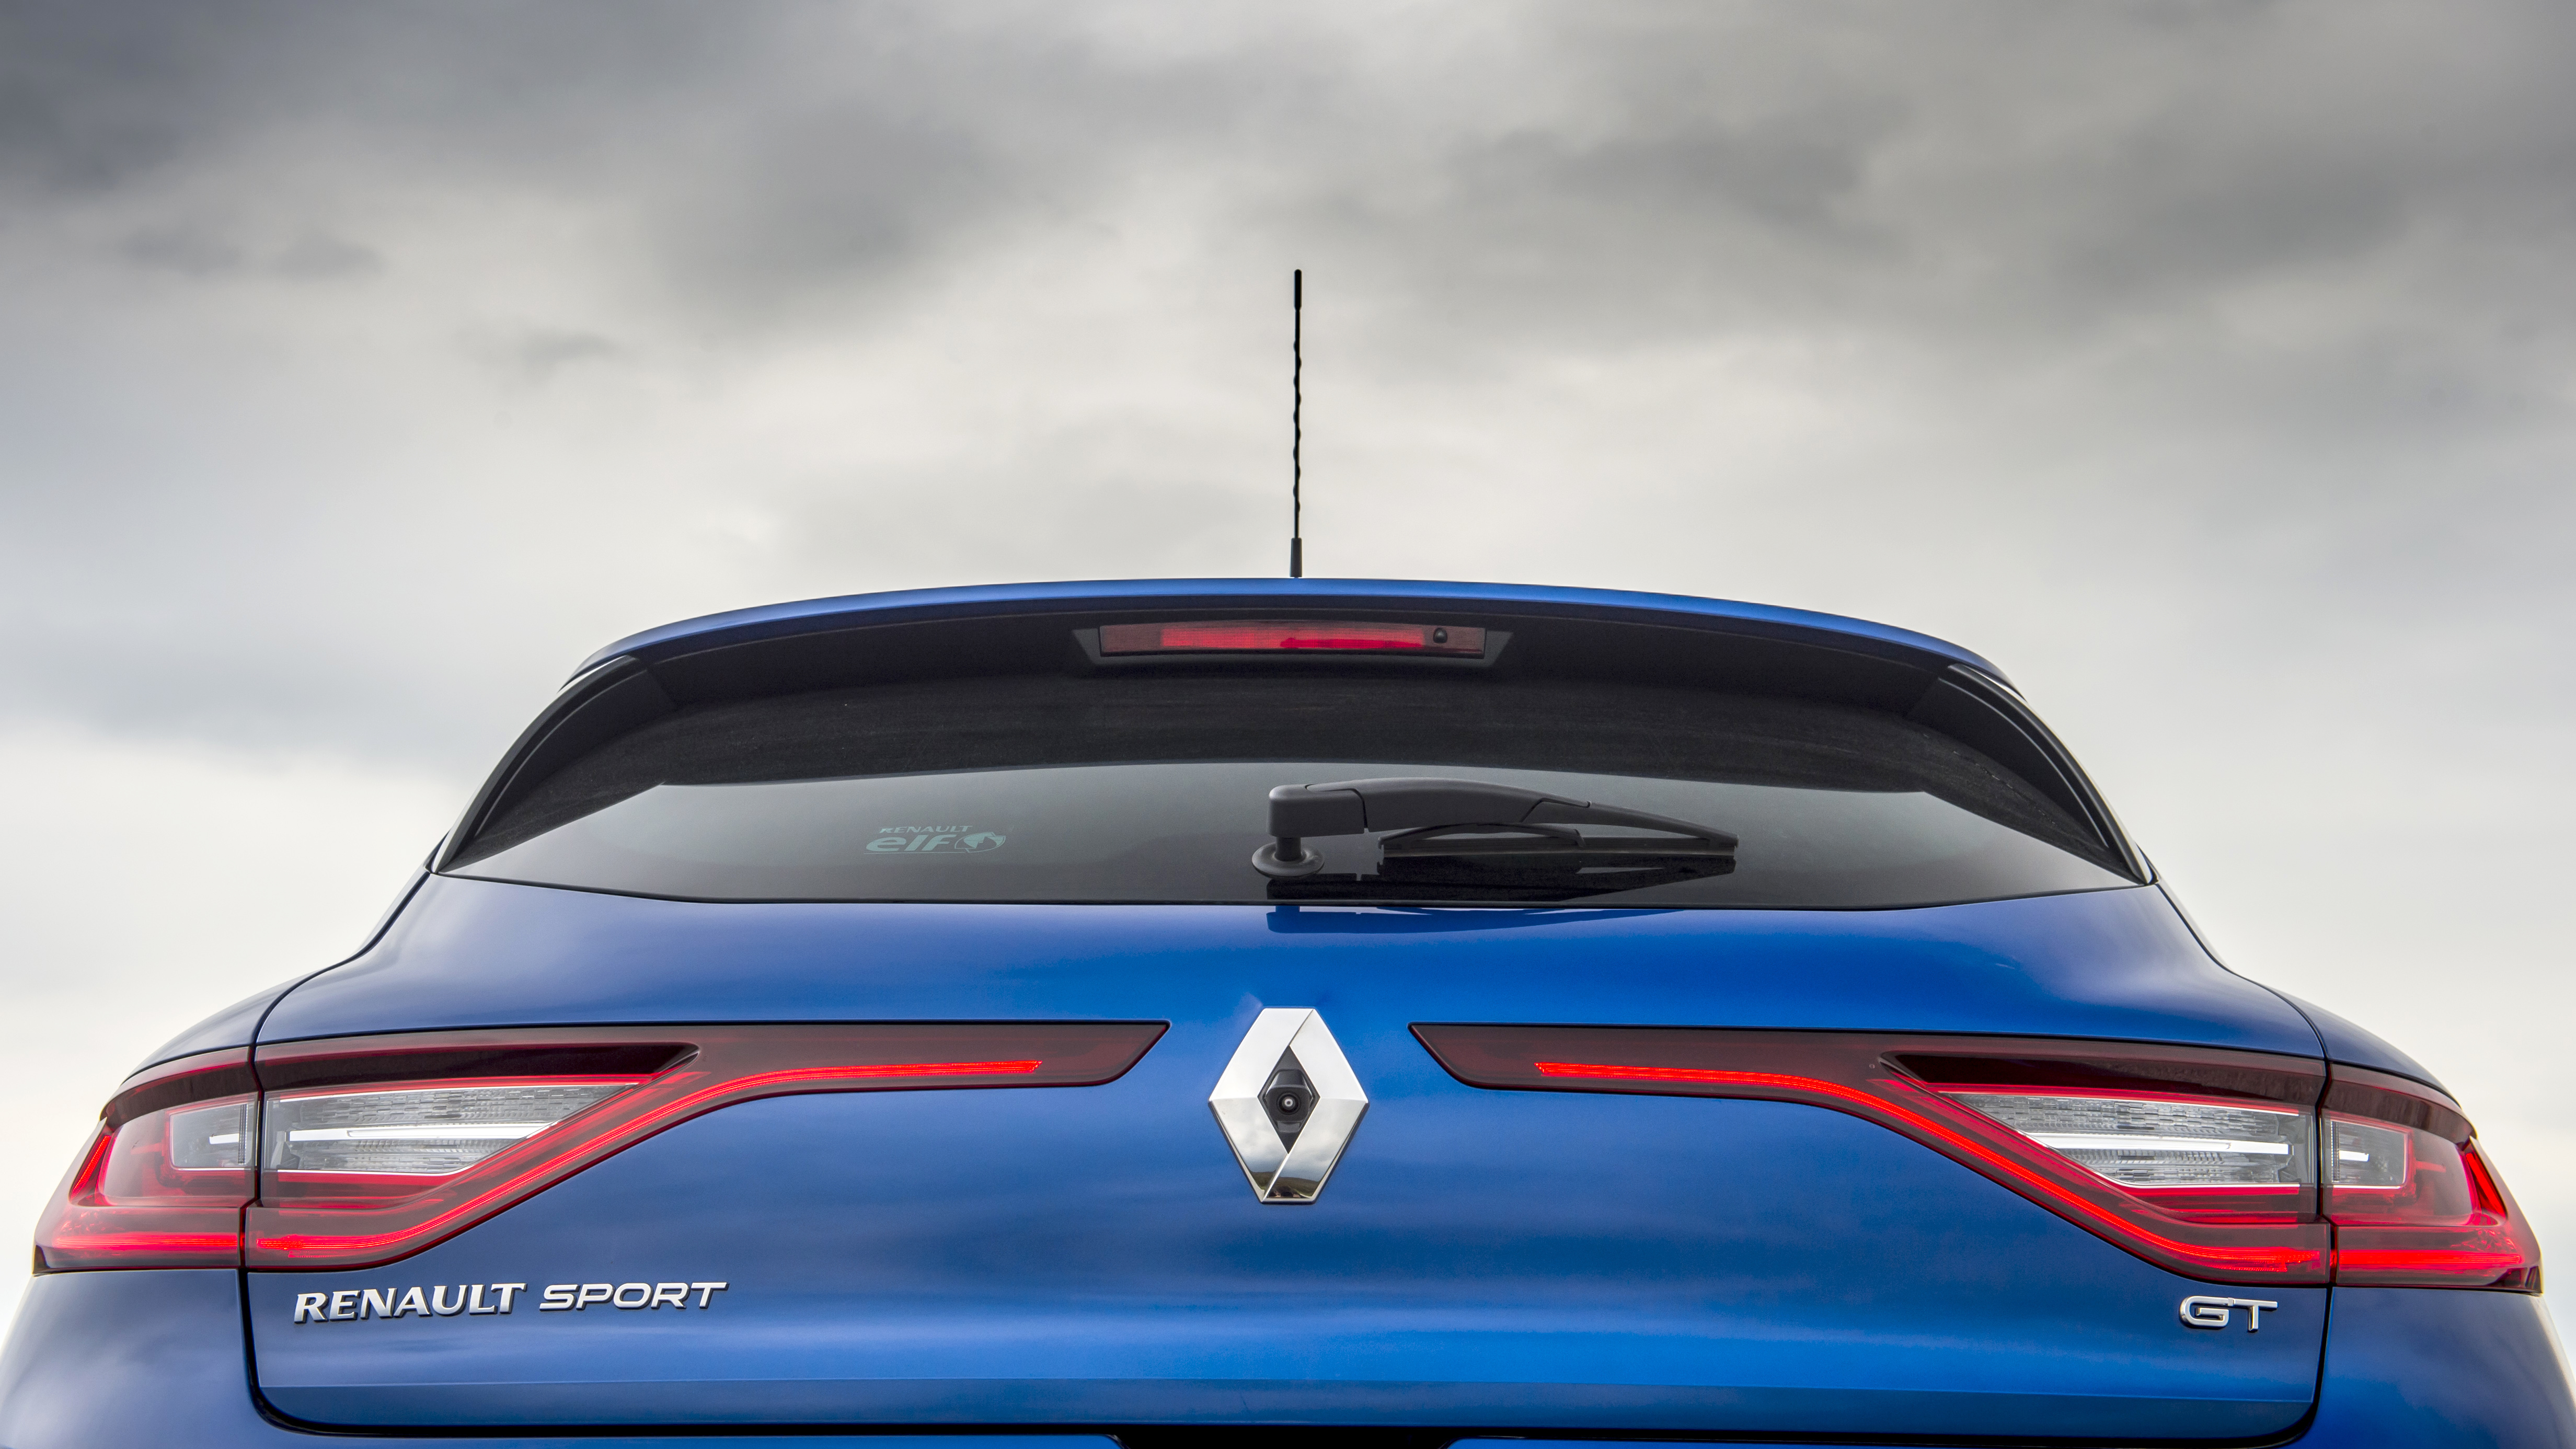 2016 Renault Mégane GT review: Clever tech, four-wheel steering, va